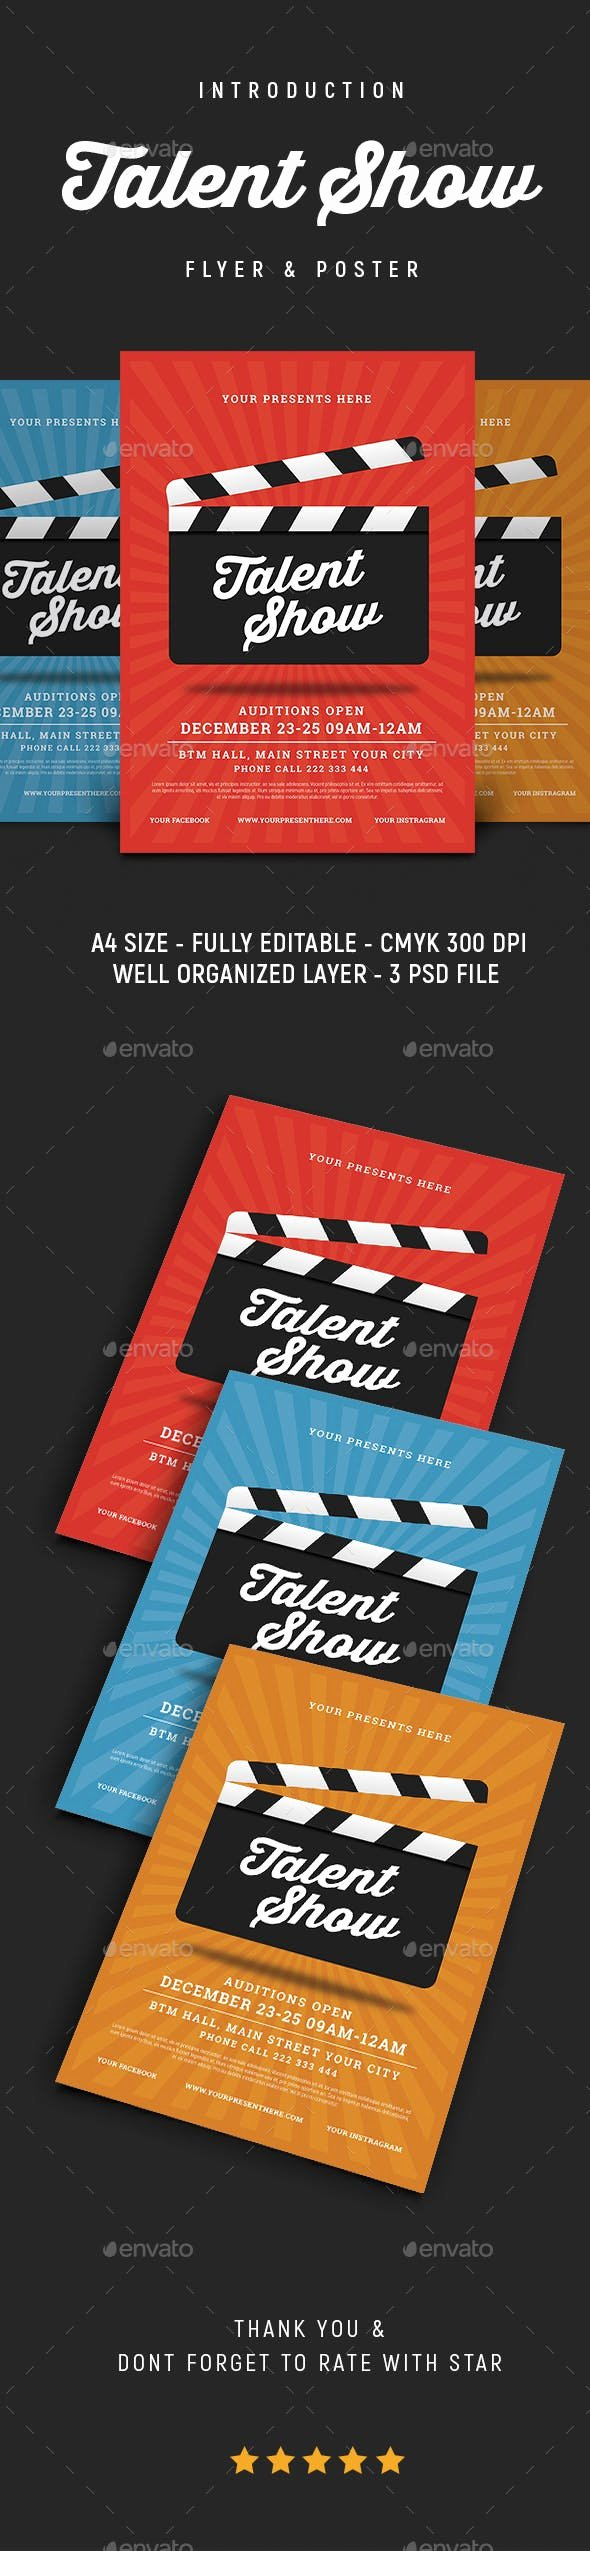 Talent Show Flyer Template Beautiful Talent Show Flyer by Lilynthesweetpea